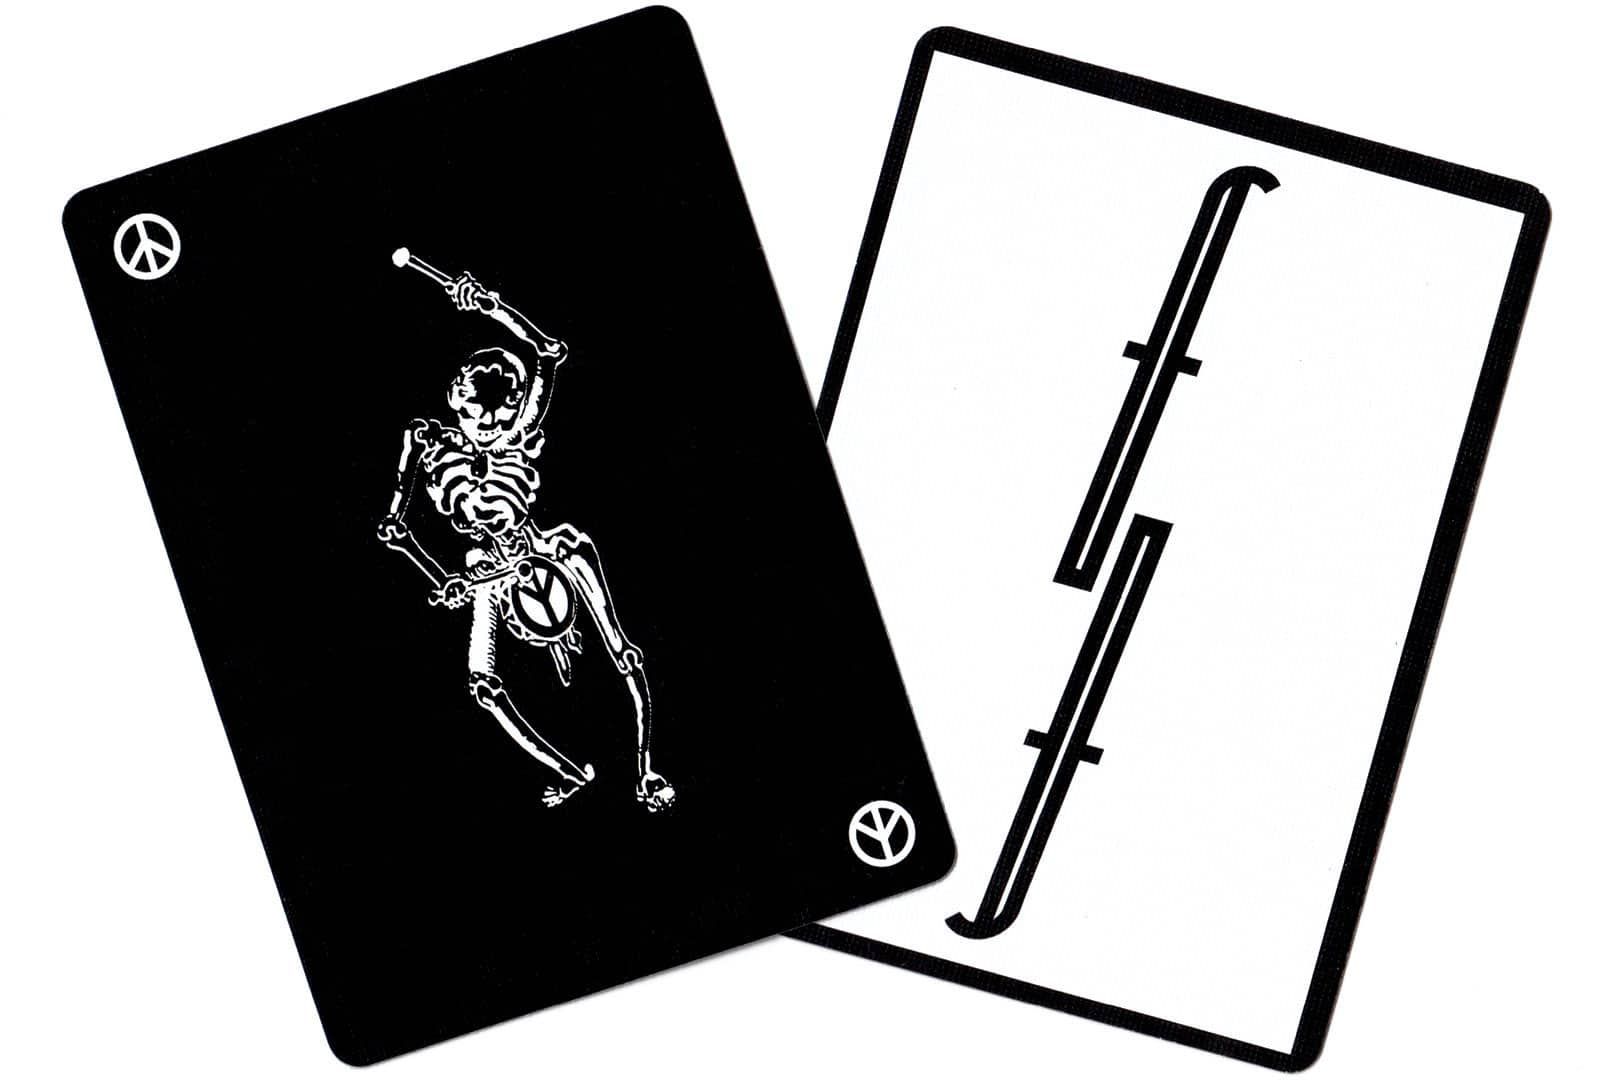 Fontaine X Babylon playing cards single deck limited edition